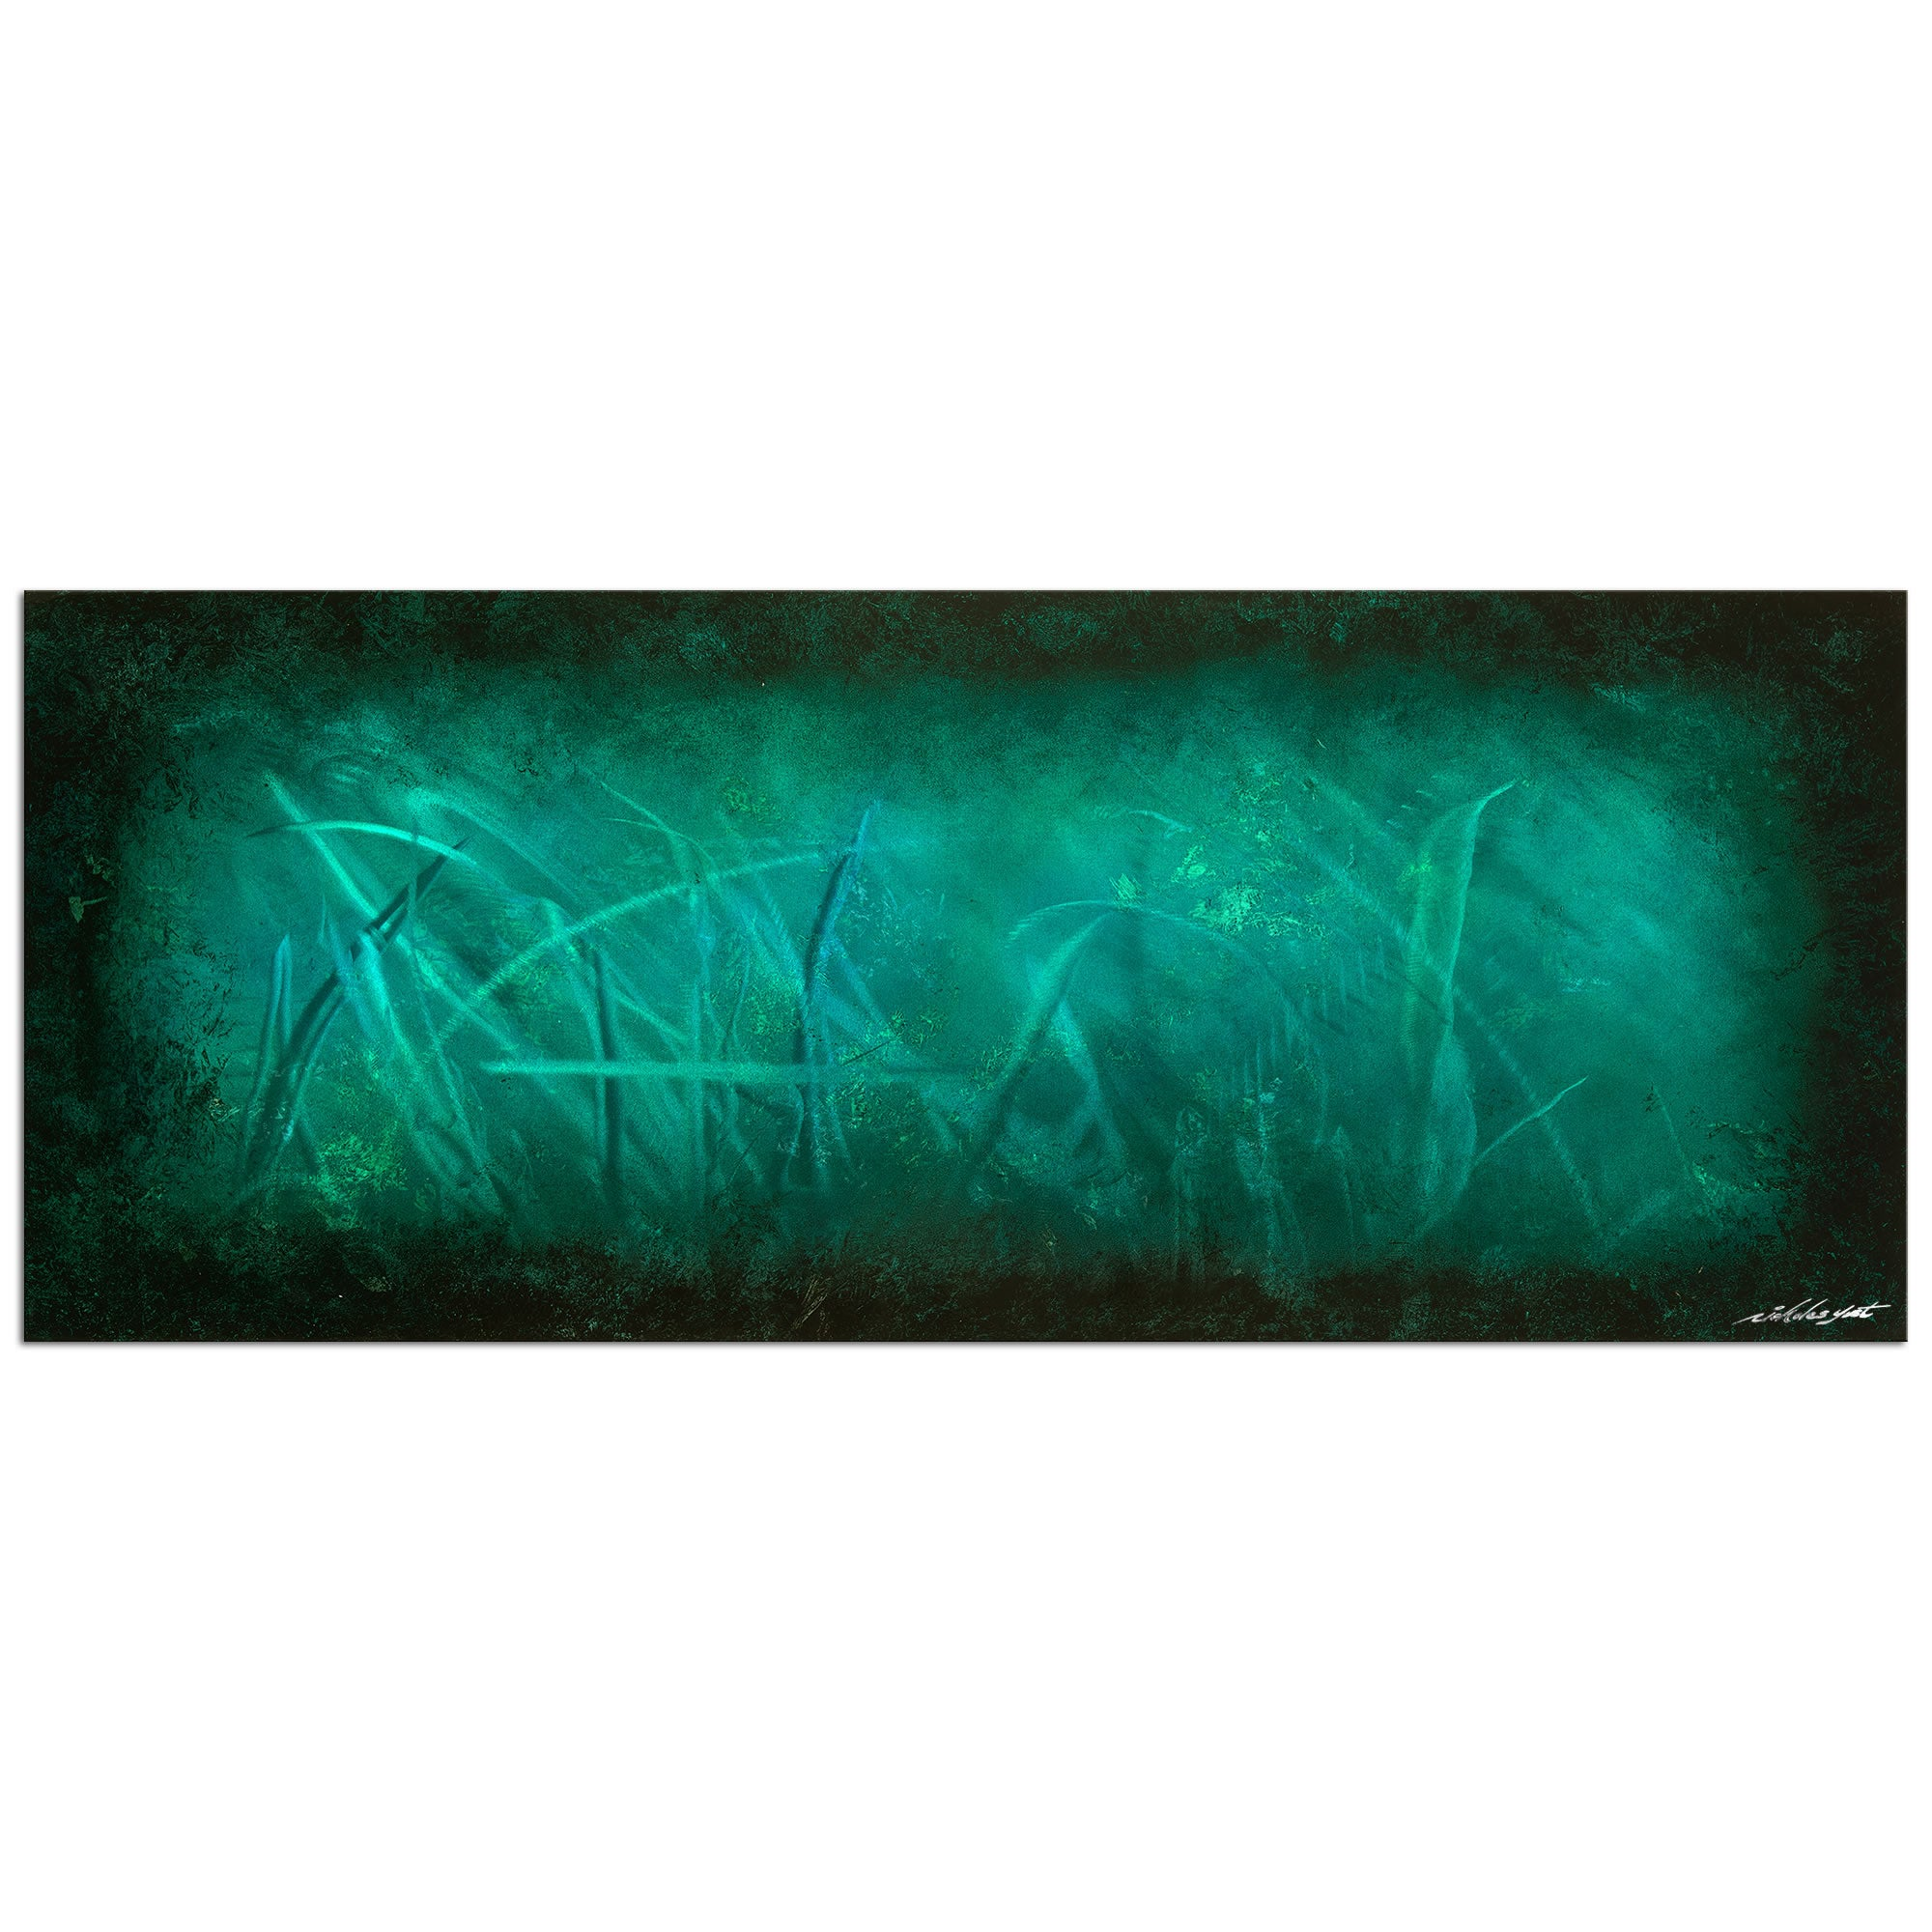 Ocean Mist - Large Indoor/Outdoor Modern Metal Wall Art